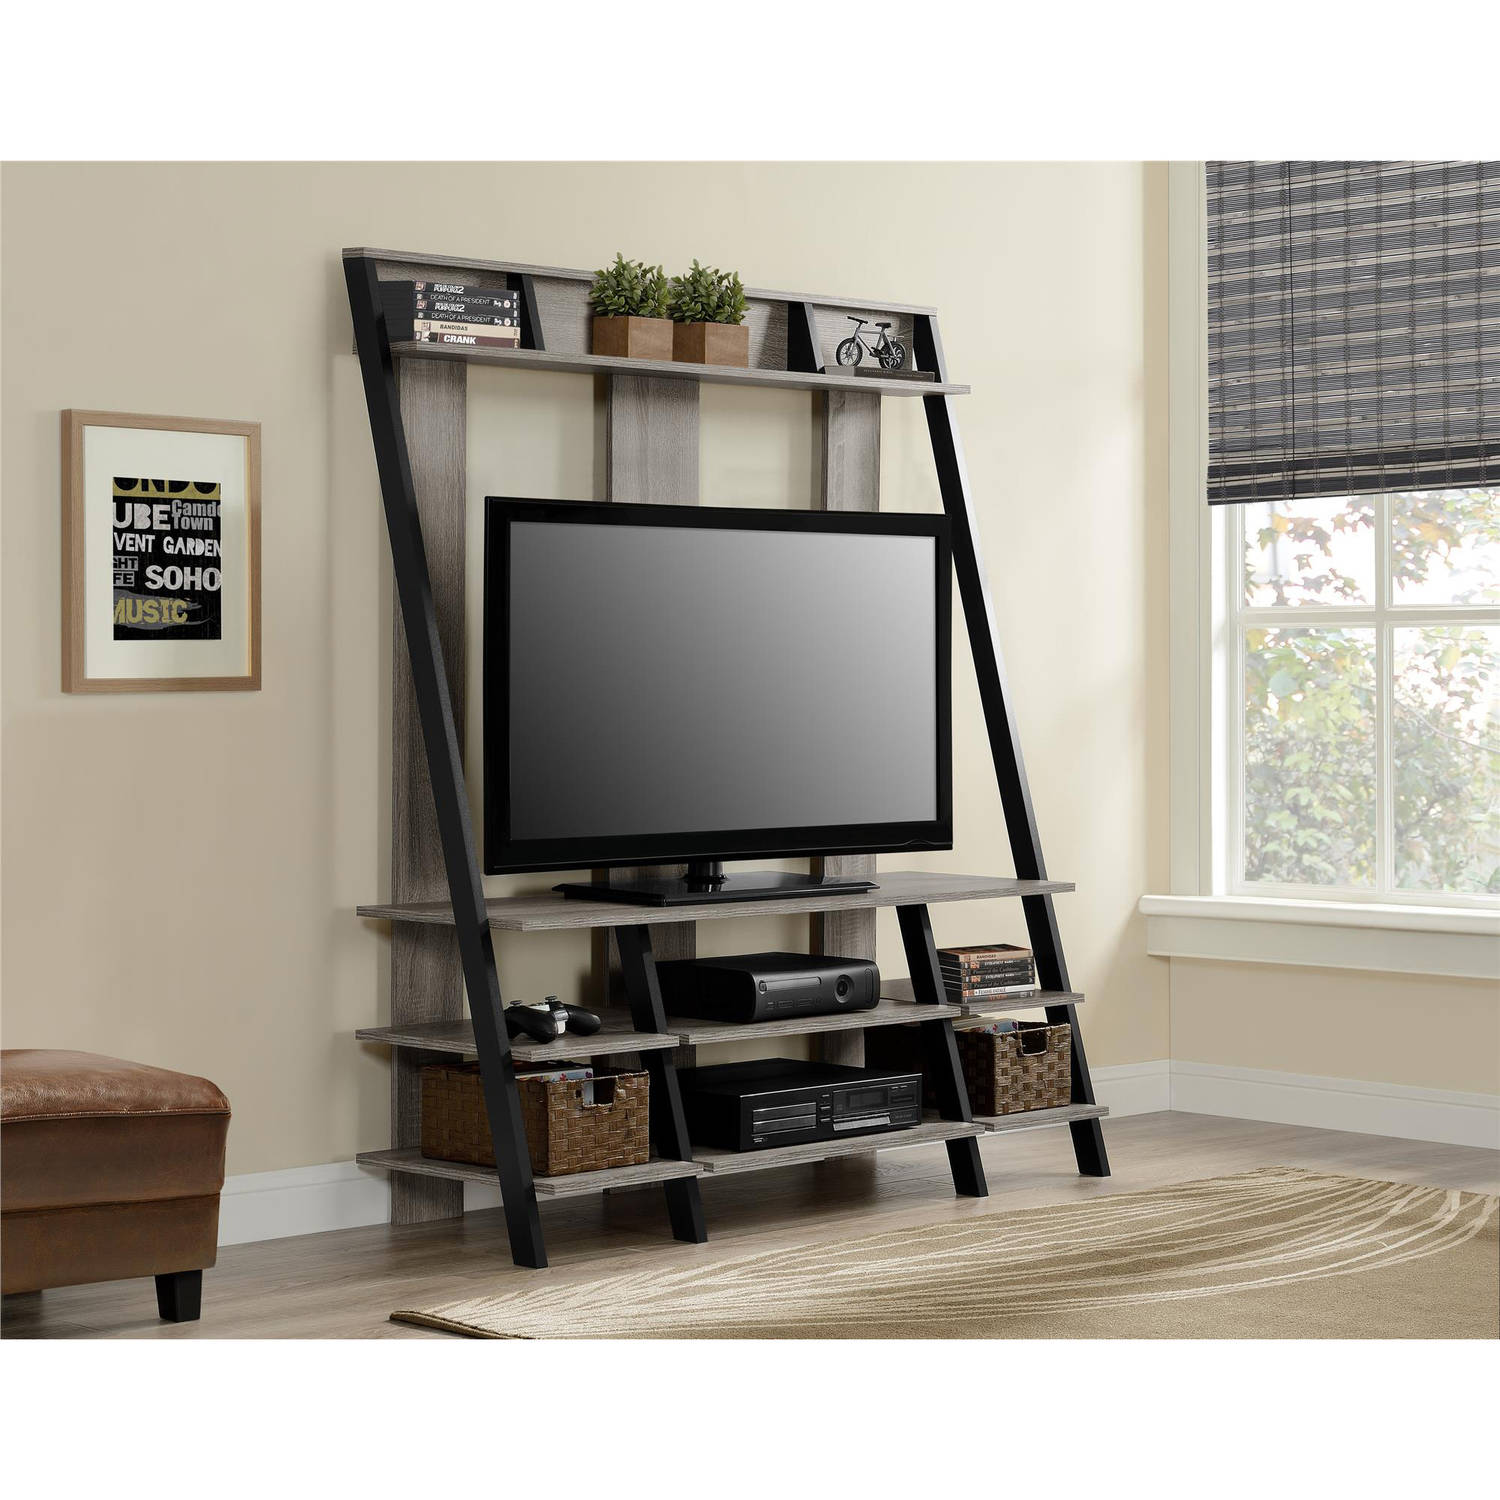 "Ladder Style Home Entertainment Center for TVs up to 48"", Multiple Colors"